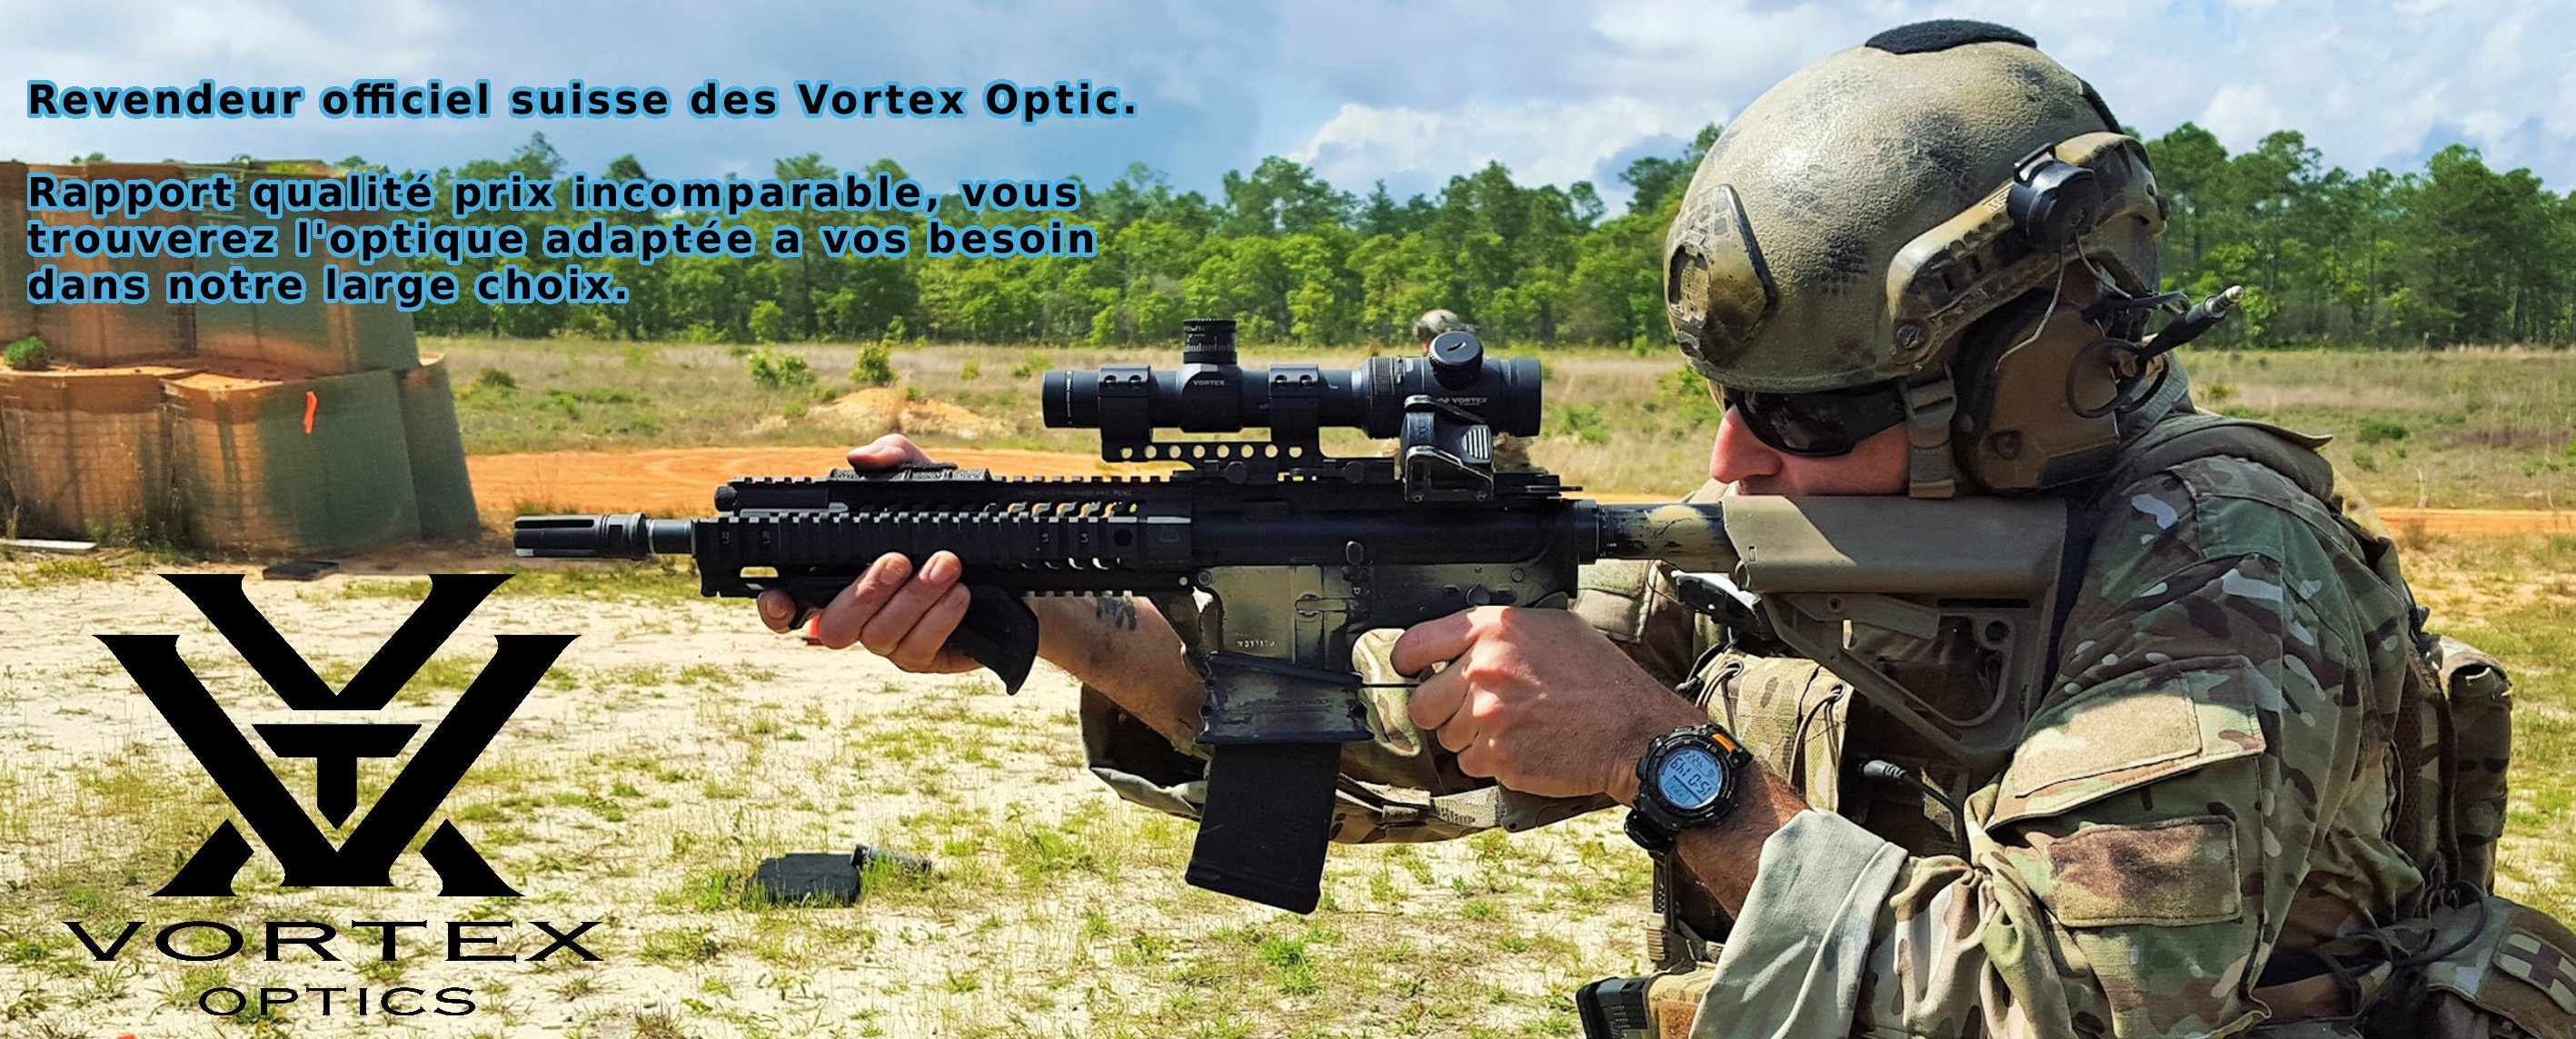 Vortex Optic